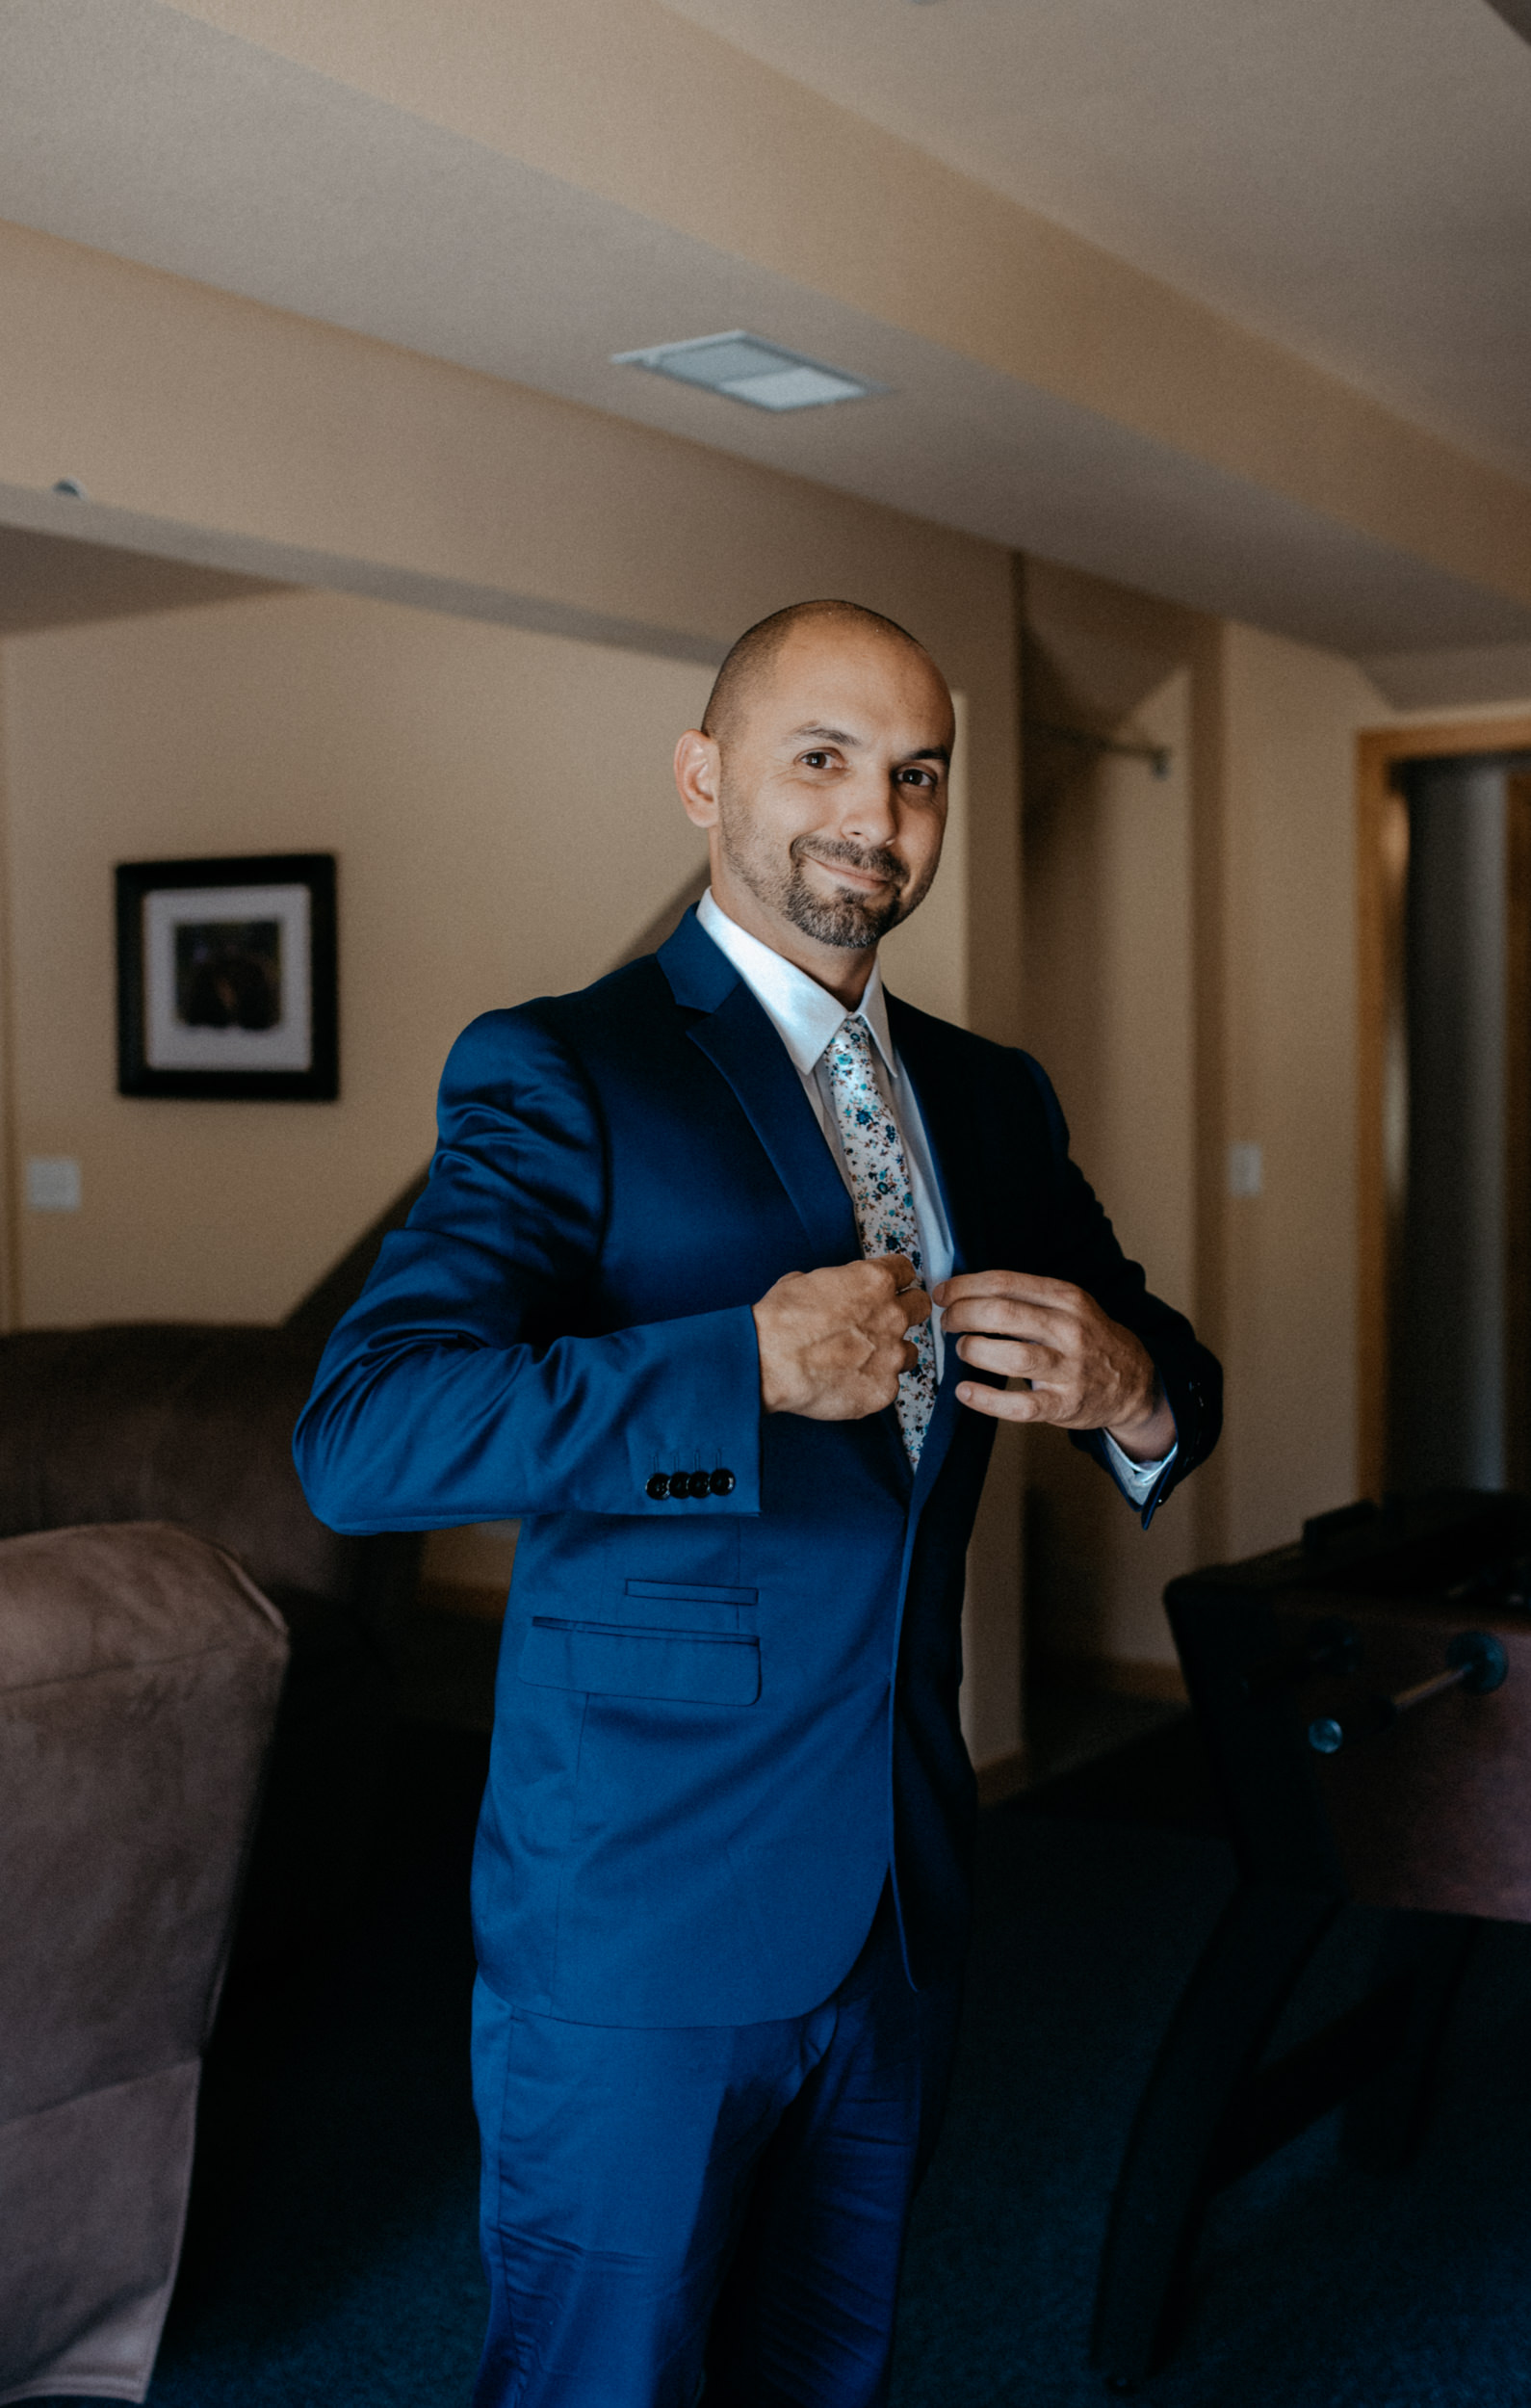 Groom getting ready before Colorado elopement. Rocky Mountain National Park wedding photographer.